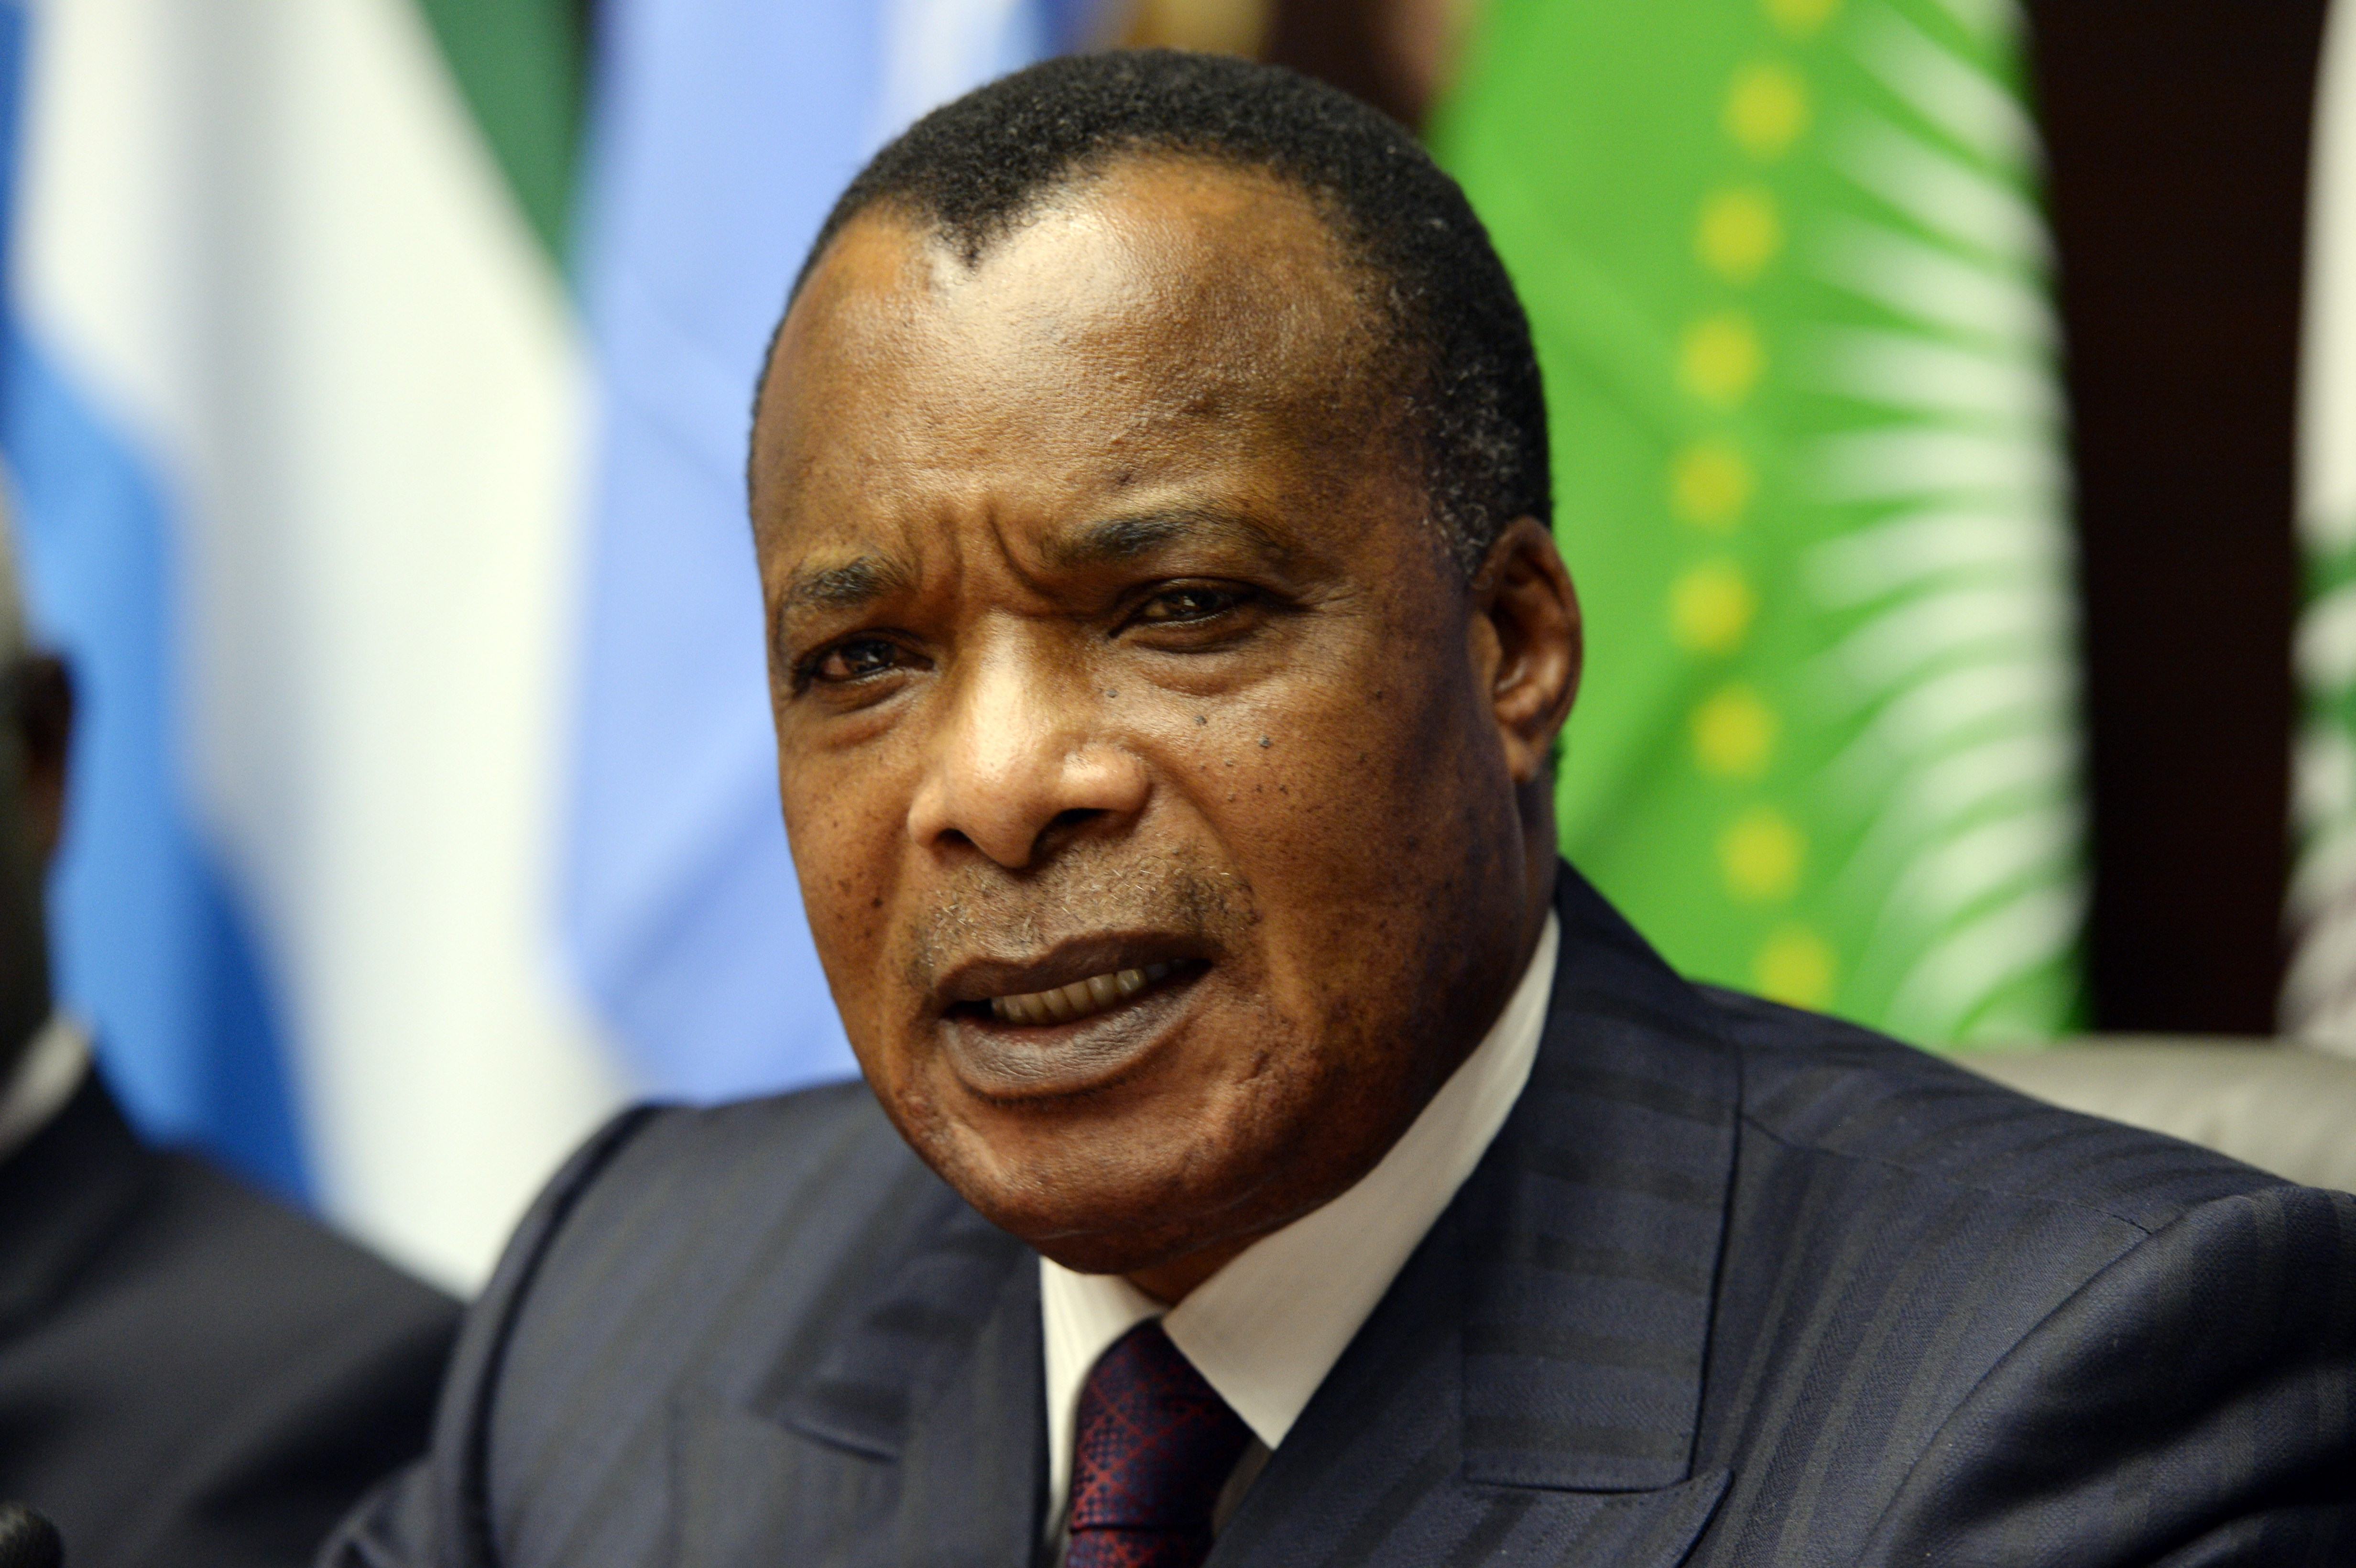 Congolese President Denis Sassou Nguesso attends a press conference on March 3, 2015